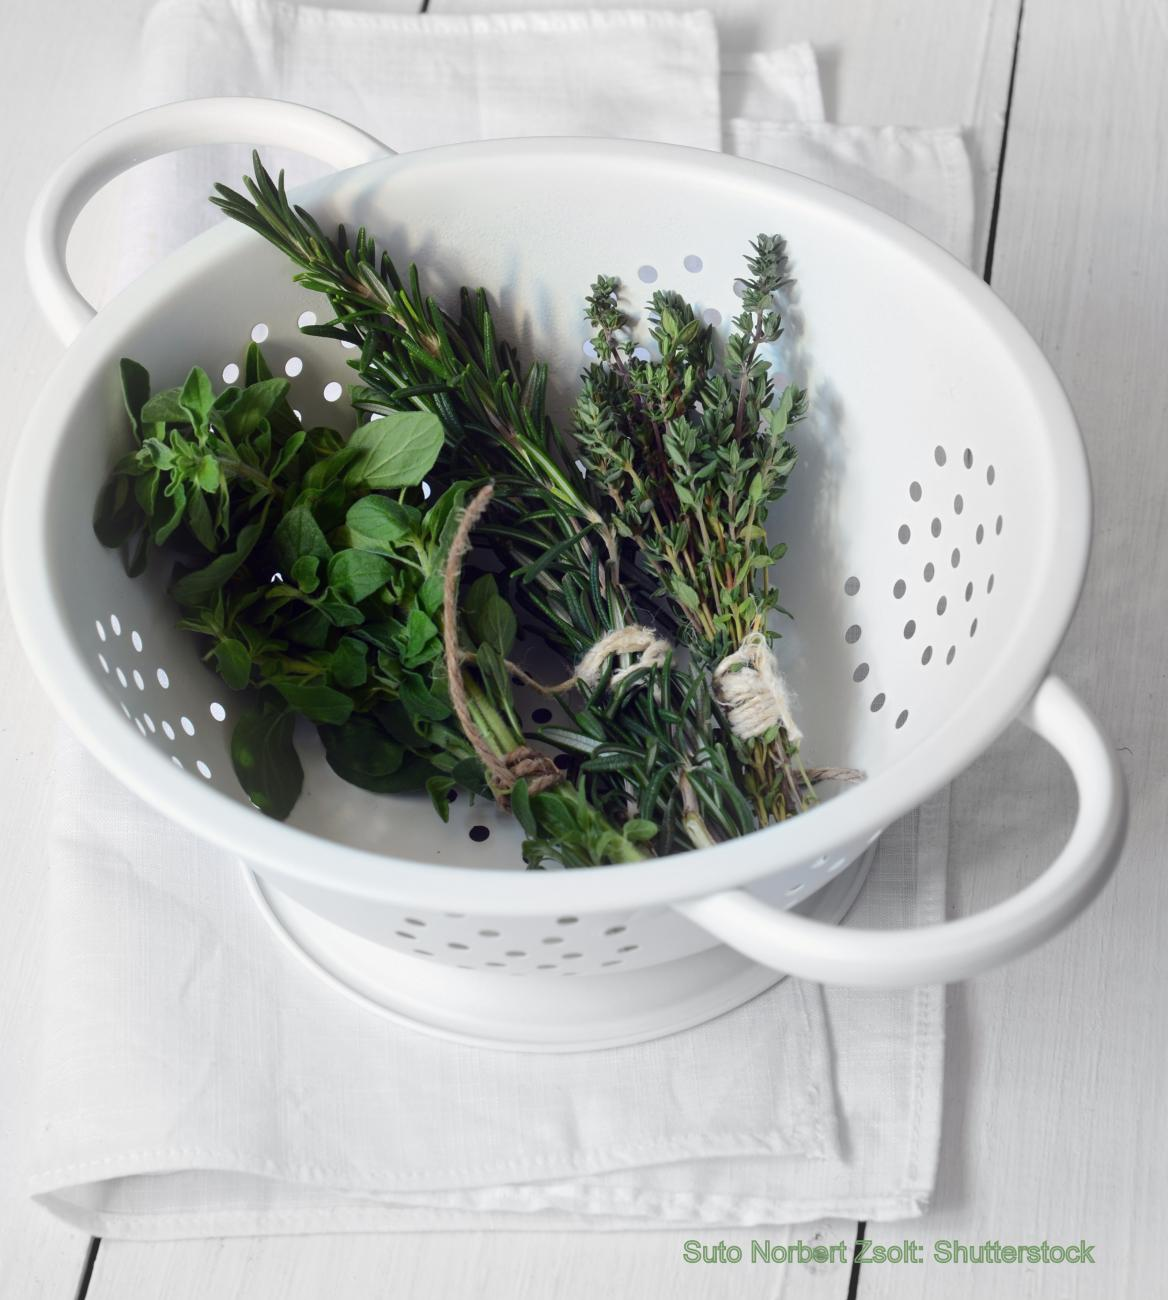 Herbs in Bowl